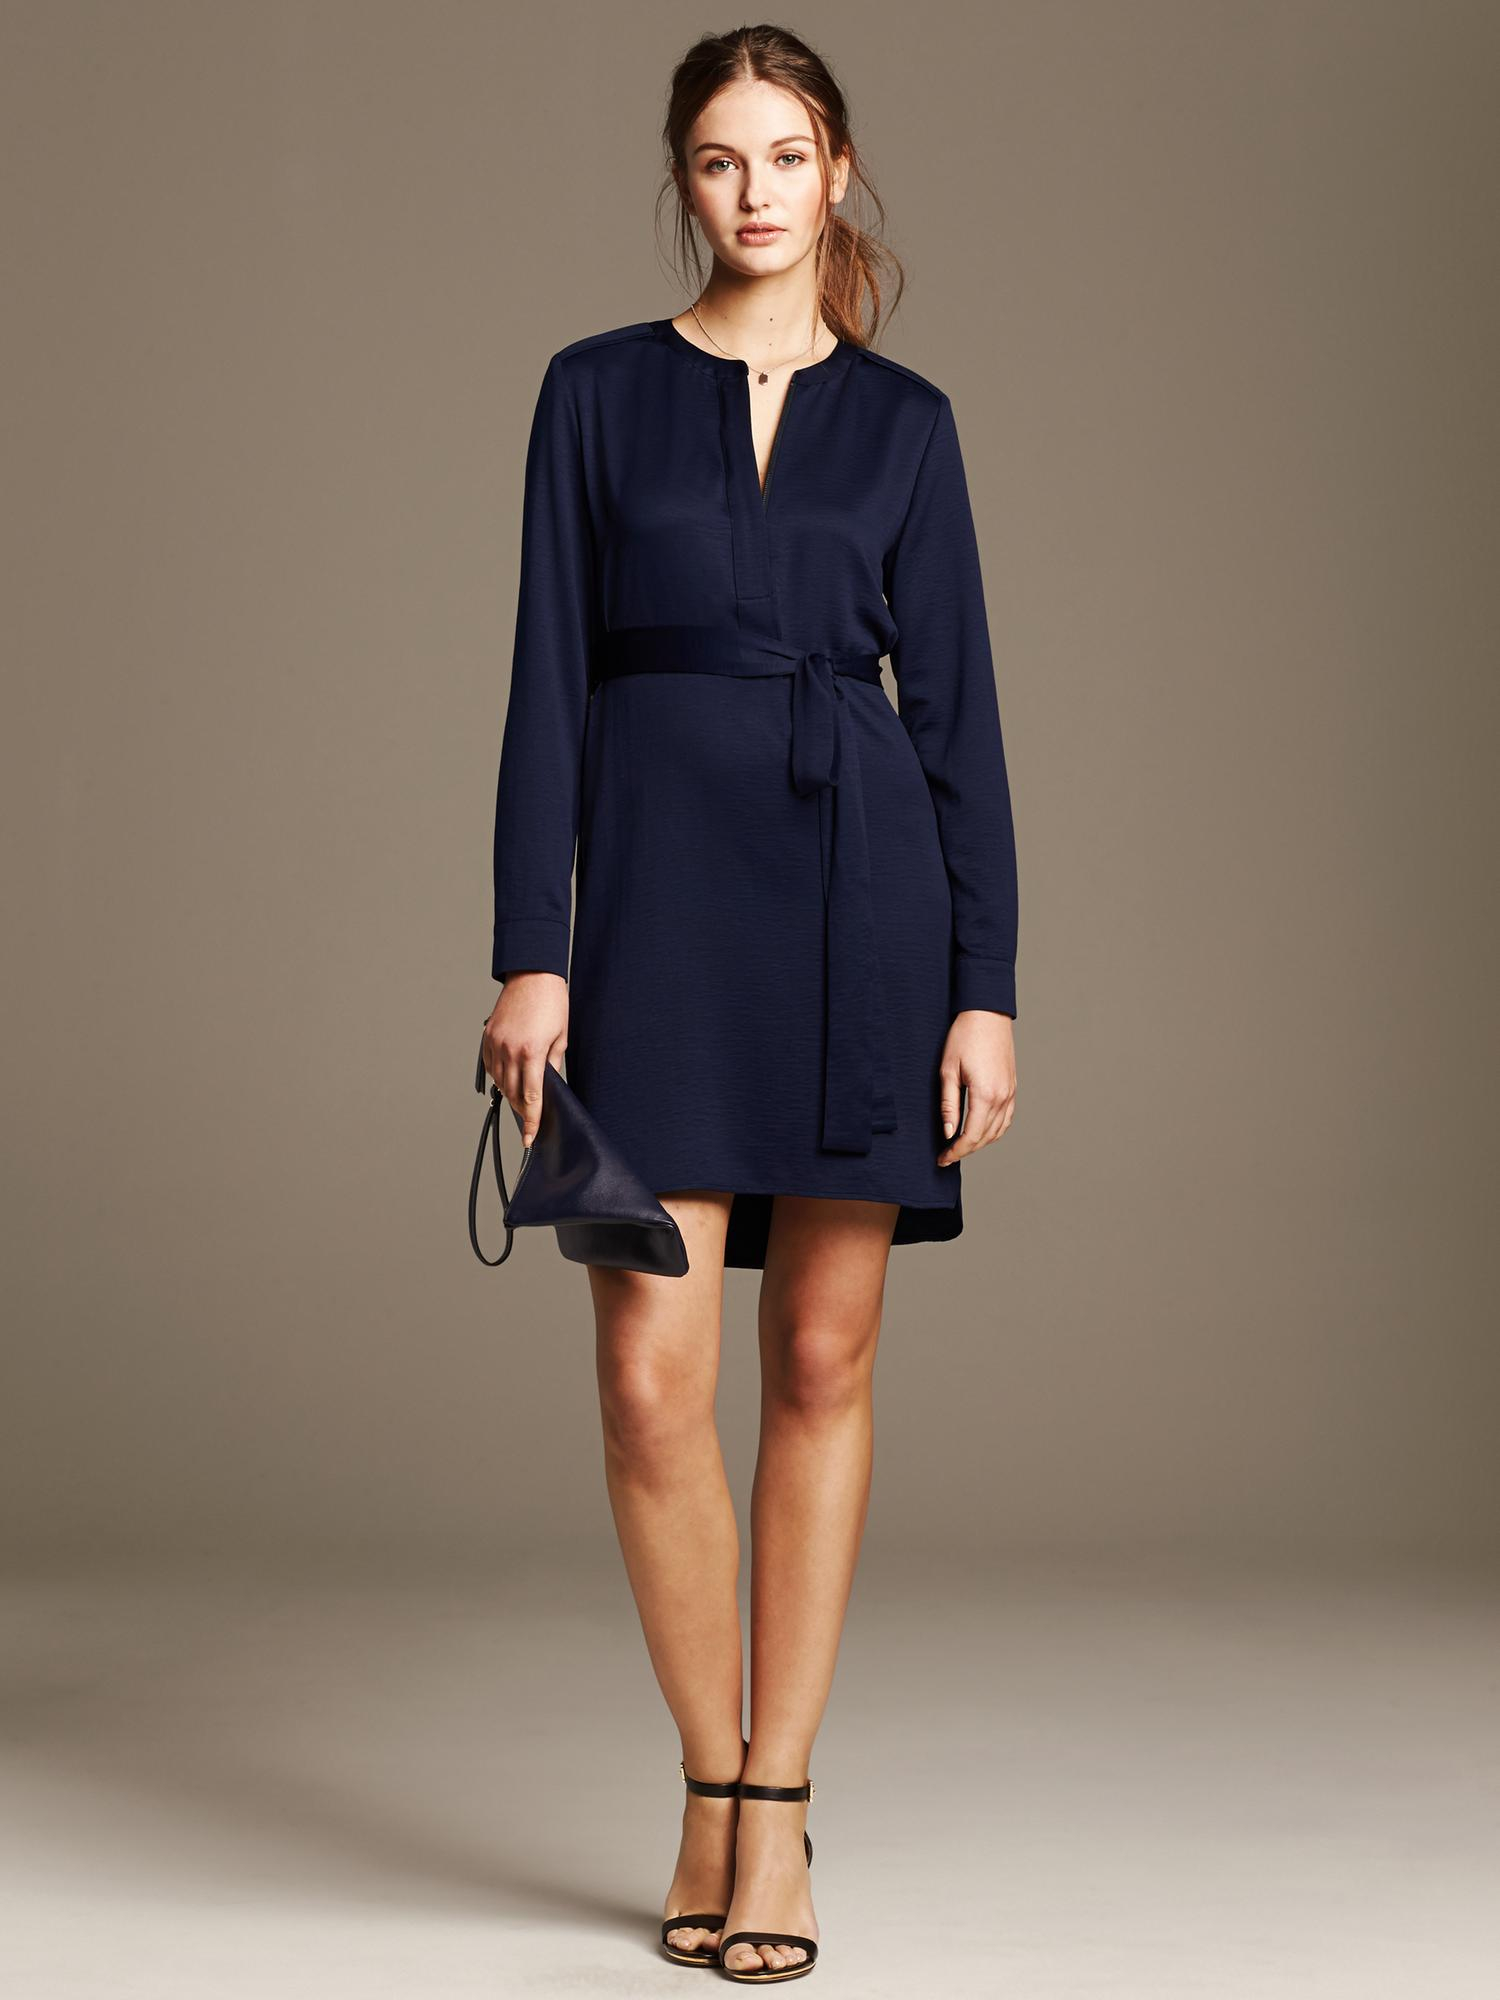 119b44d207d Banana Republic Navy Zip-Front Shirtdress in Blue - Lyst